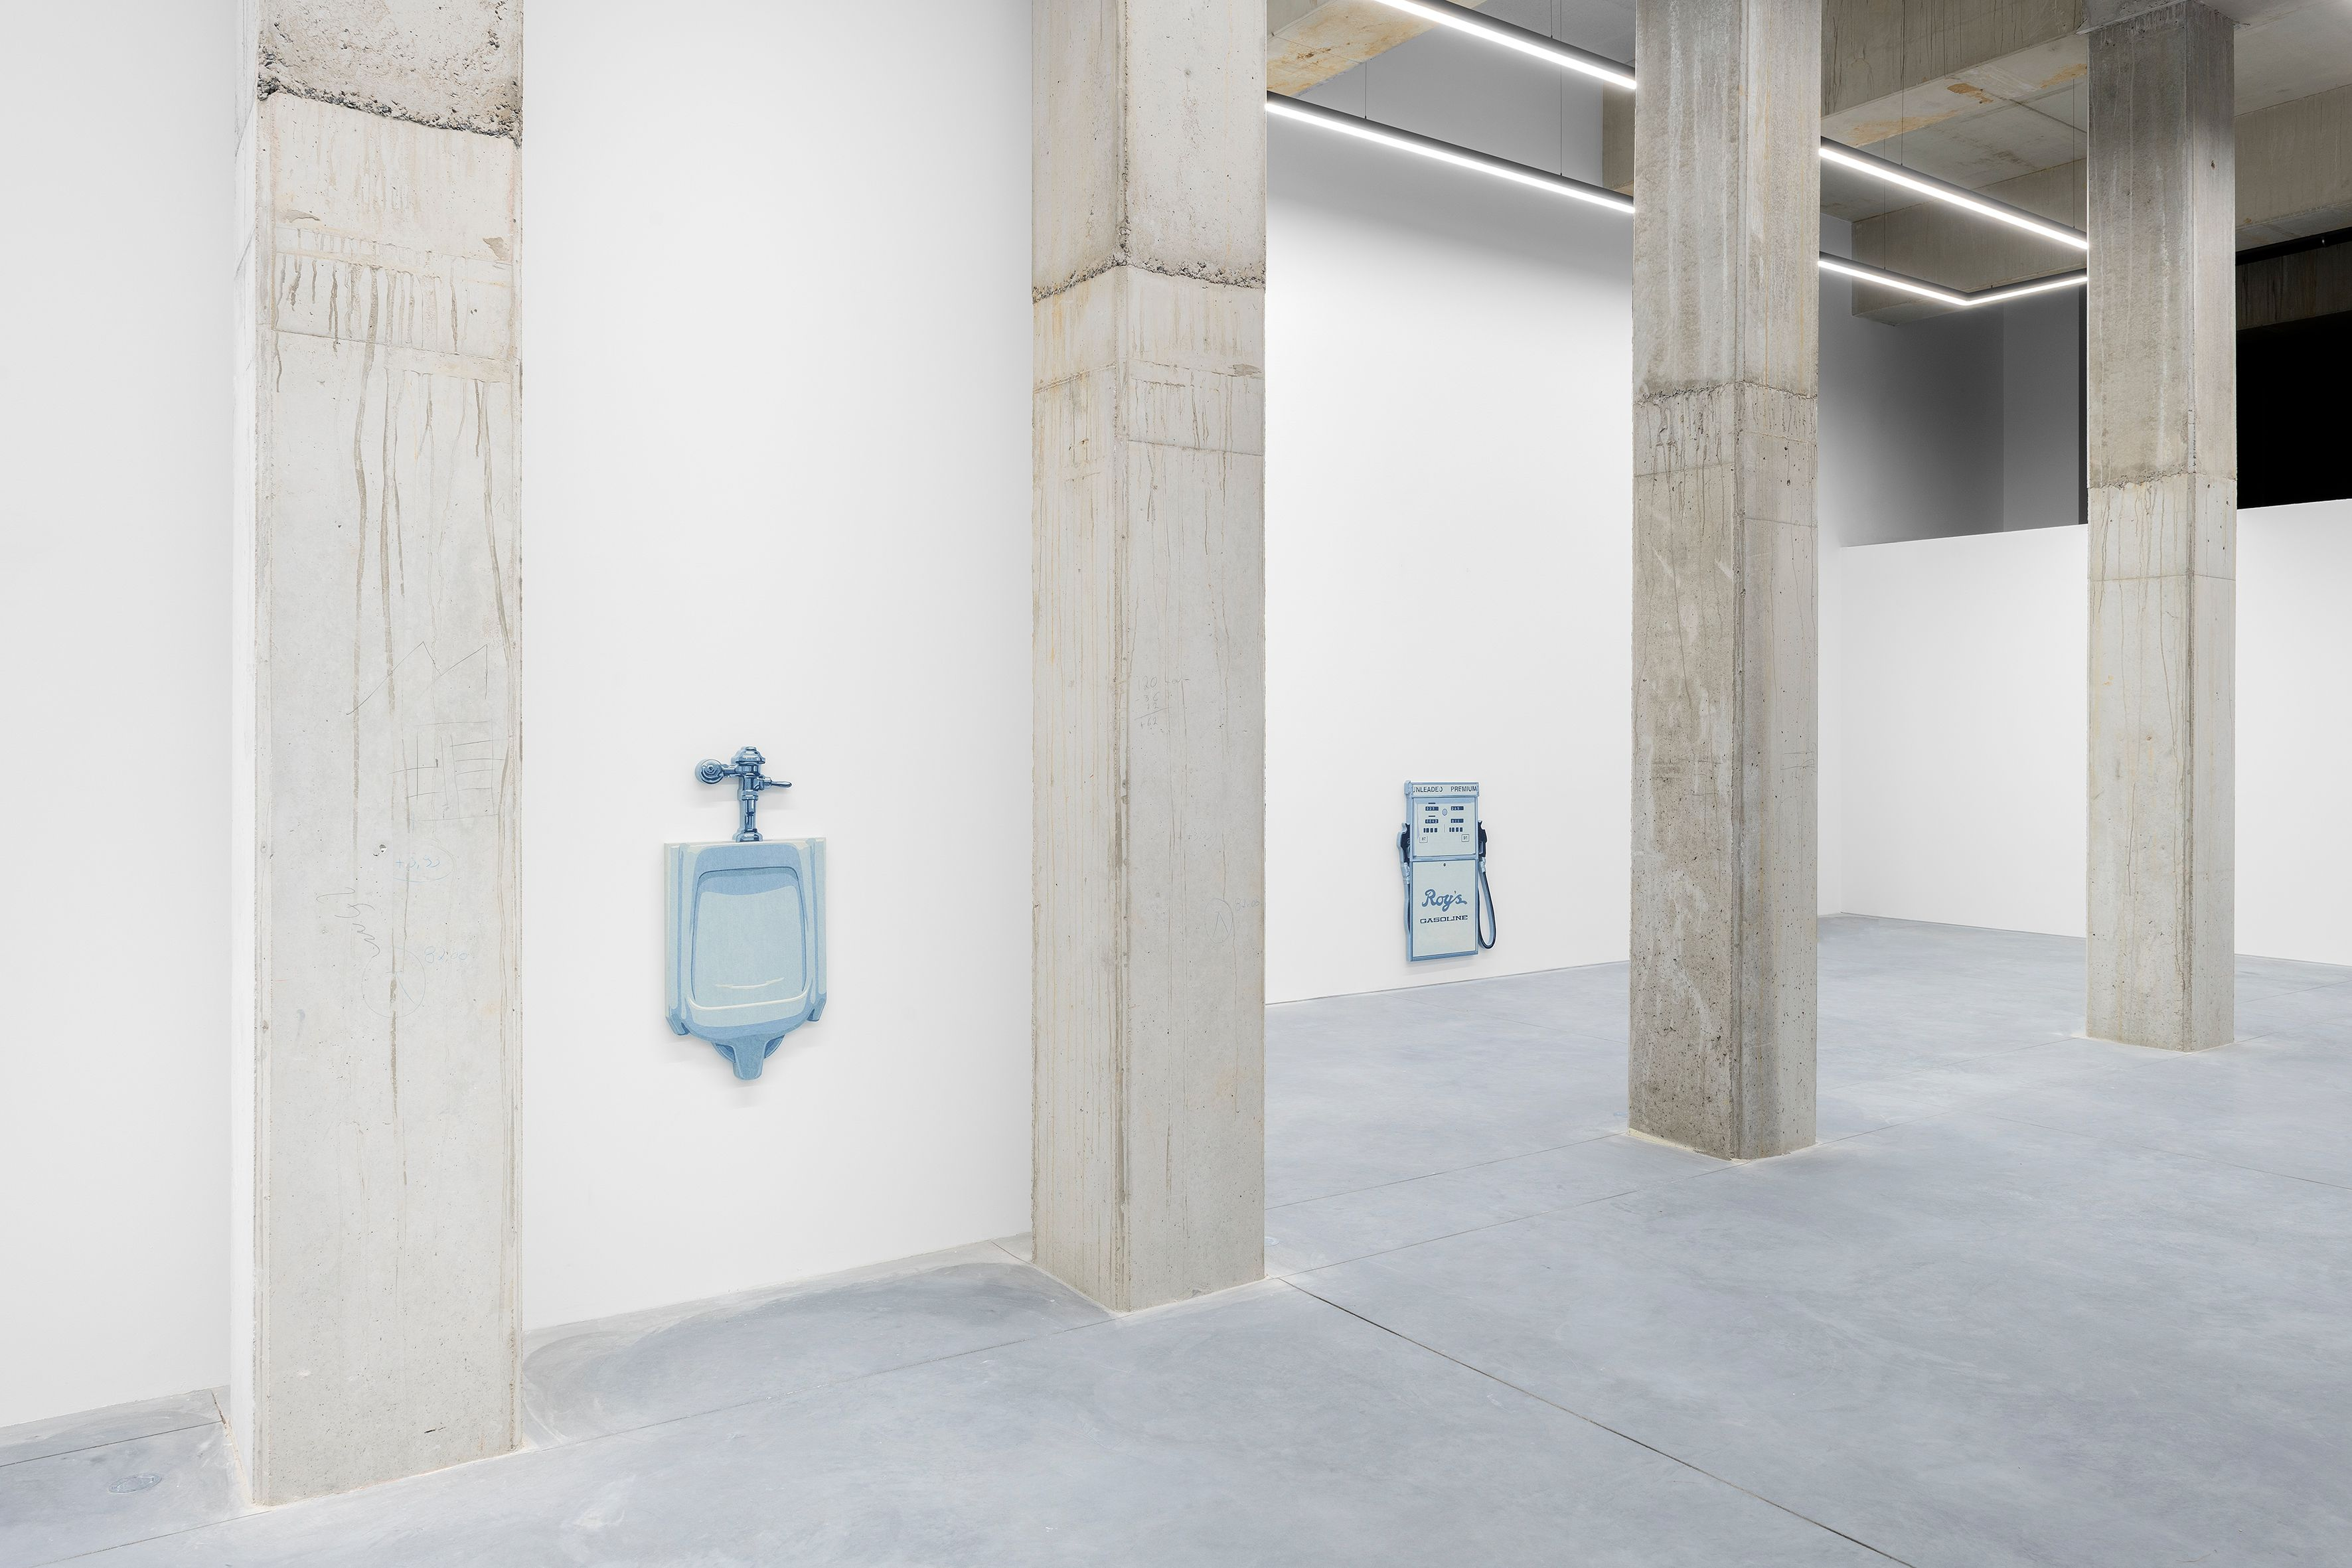 Installation View, Courtesy of the artist and Stems Gallery, Credits: Hugard & Vanoverschelde